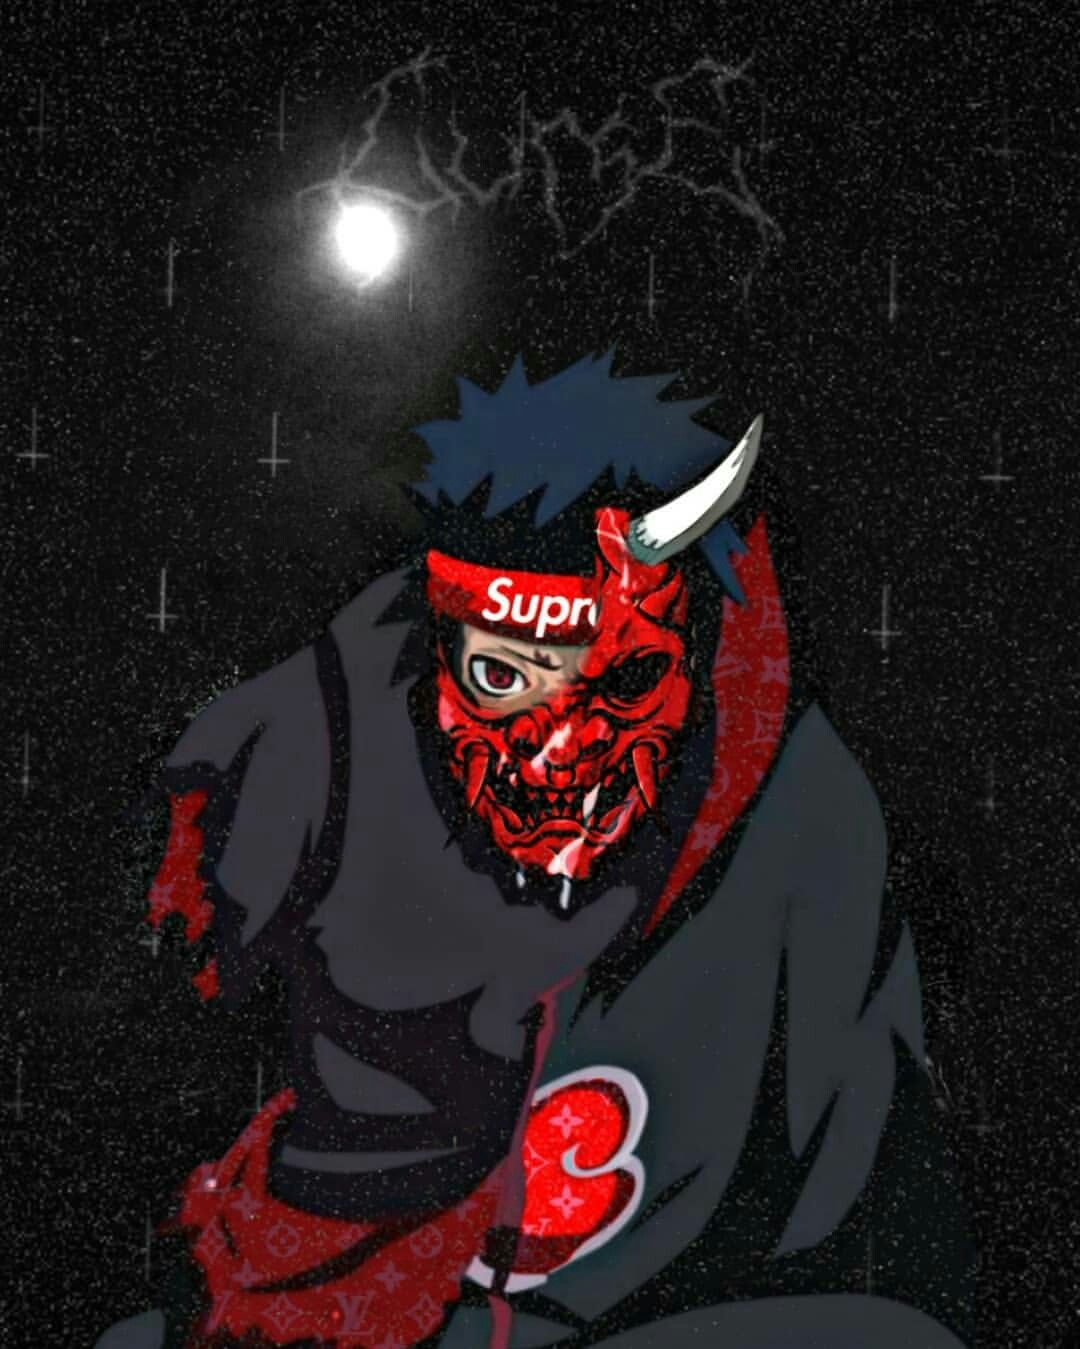 Pin by Davienm on Anime characters Naruto wallpaper